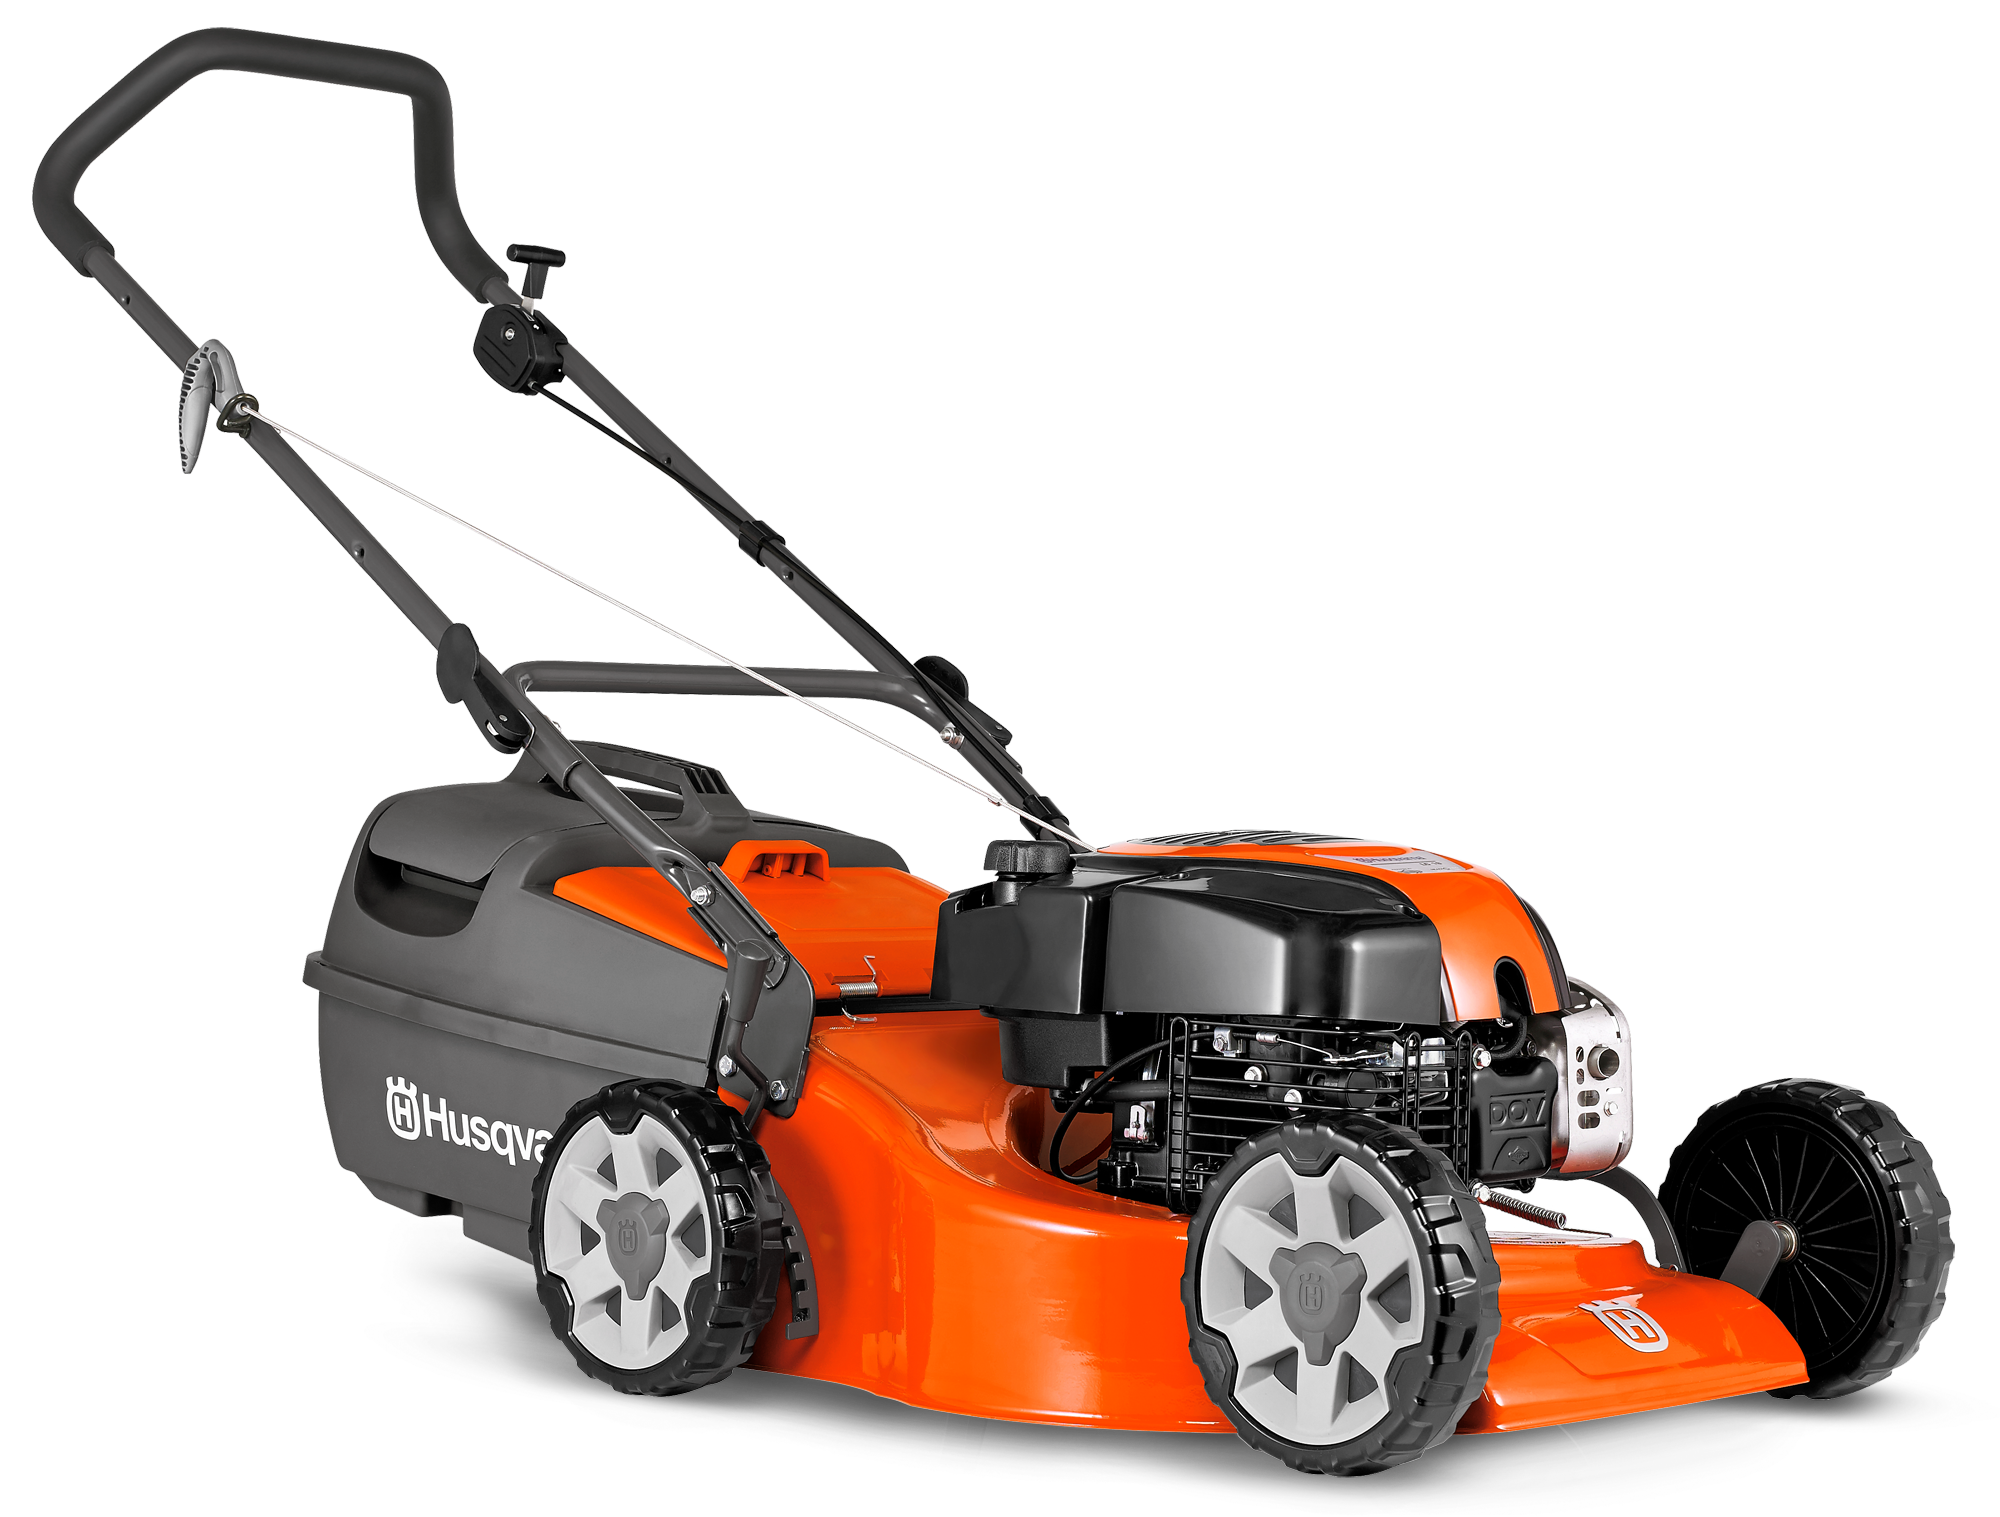 Lawnmower Png, png collections at sccpre.cat.